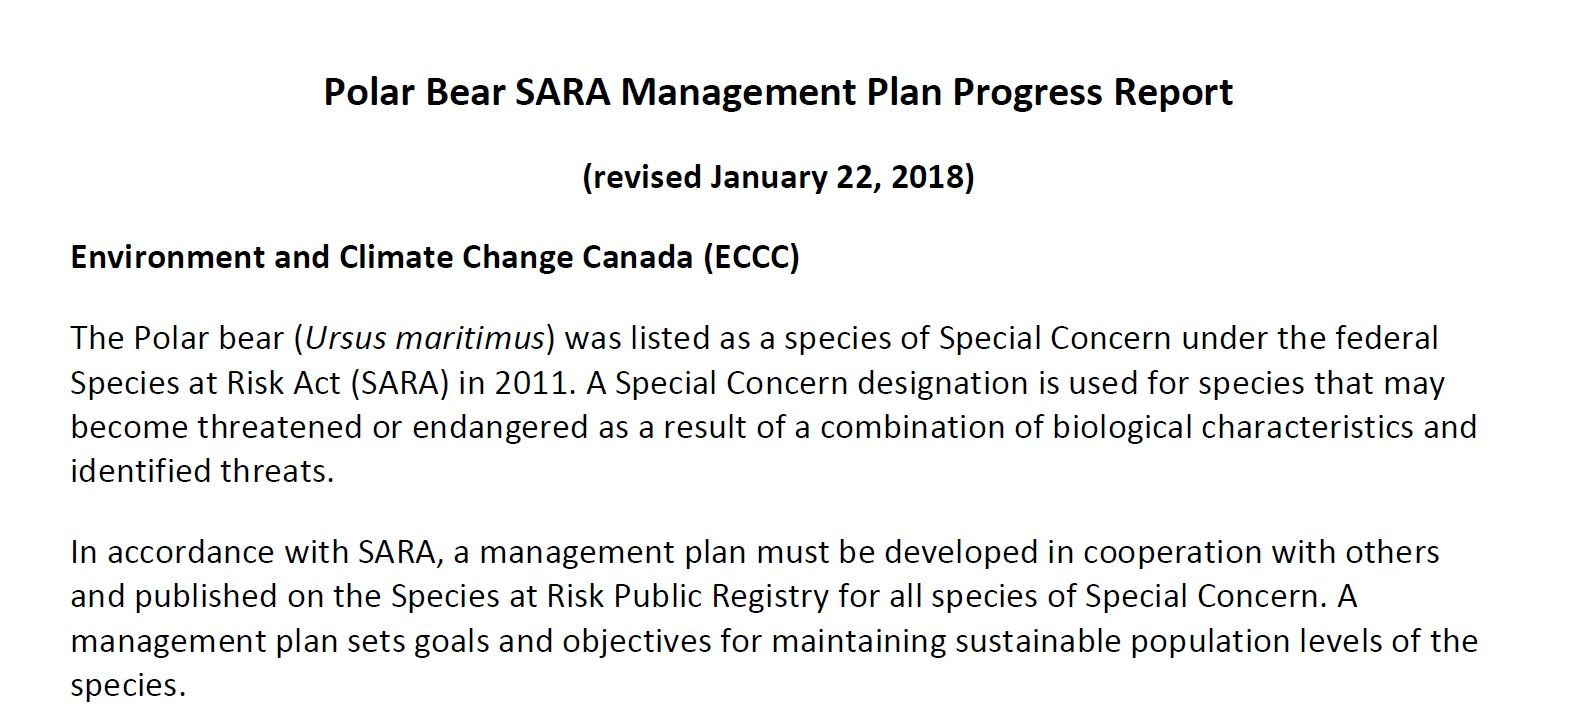 Polar Bear SARA Management Plan Progress Report. Jan2018